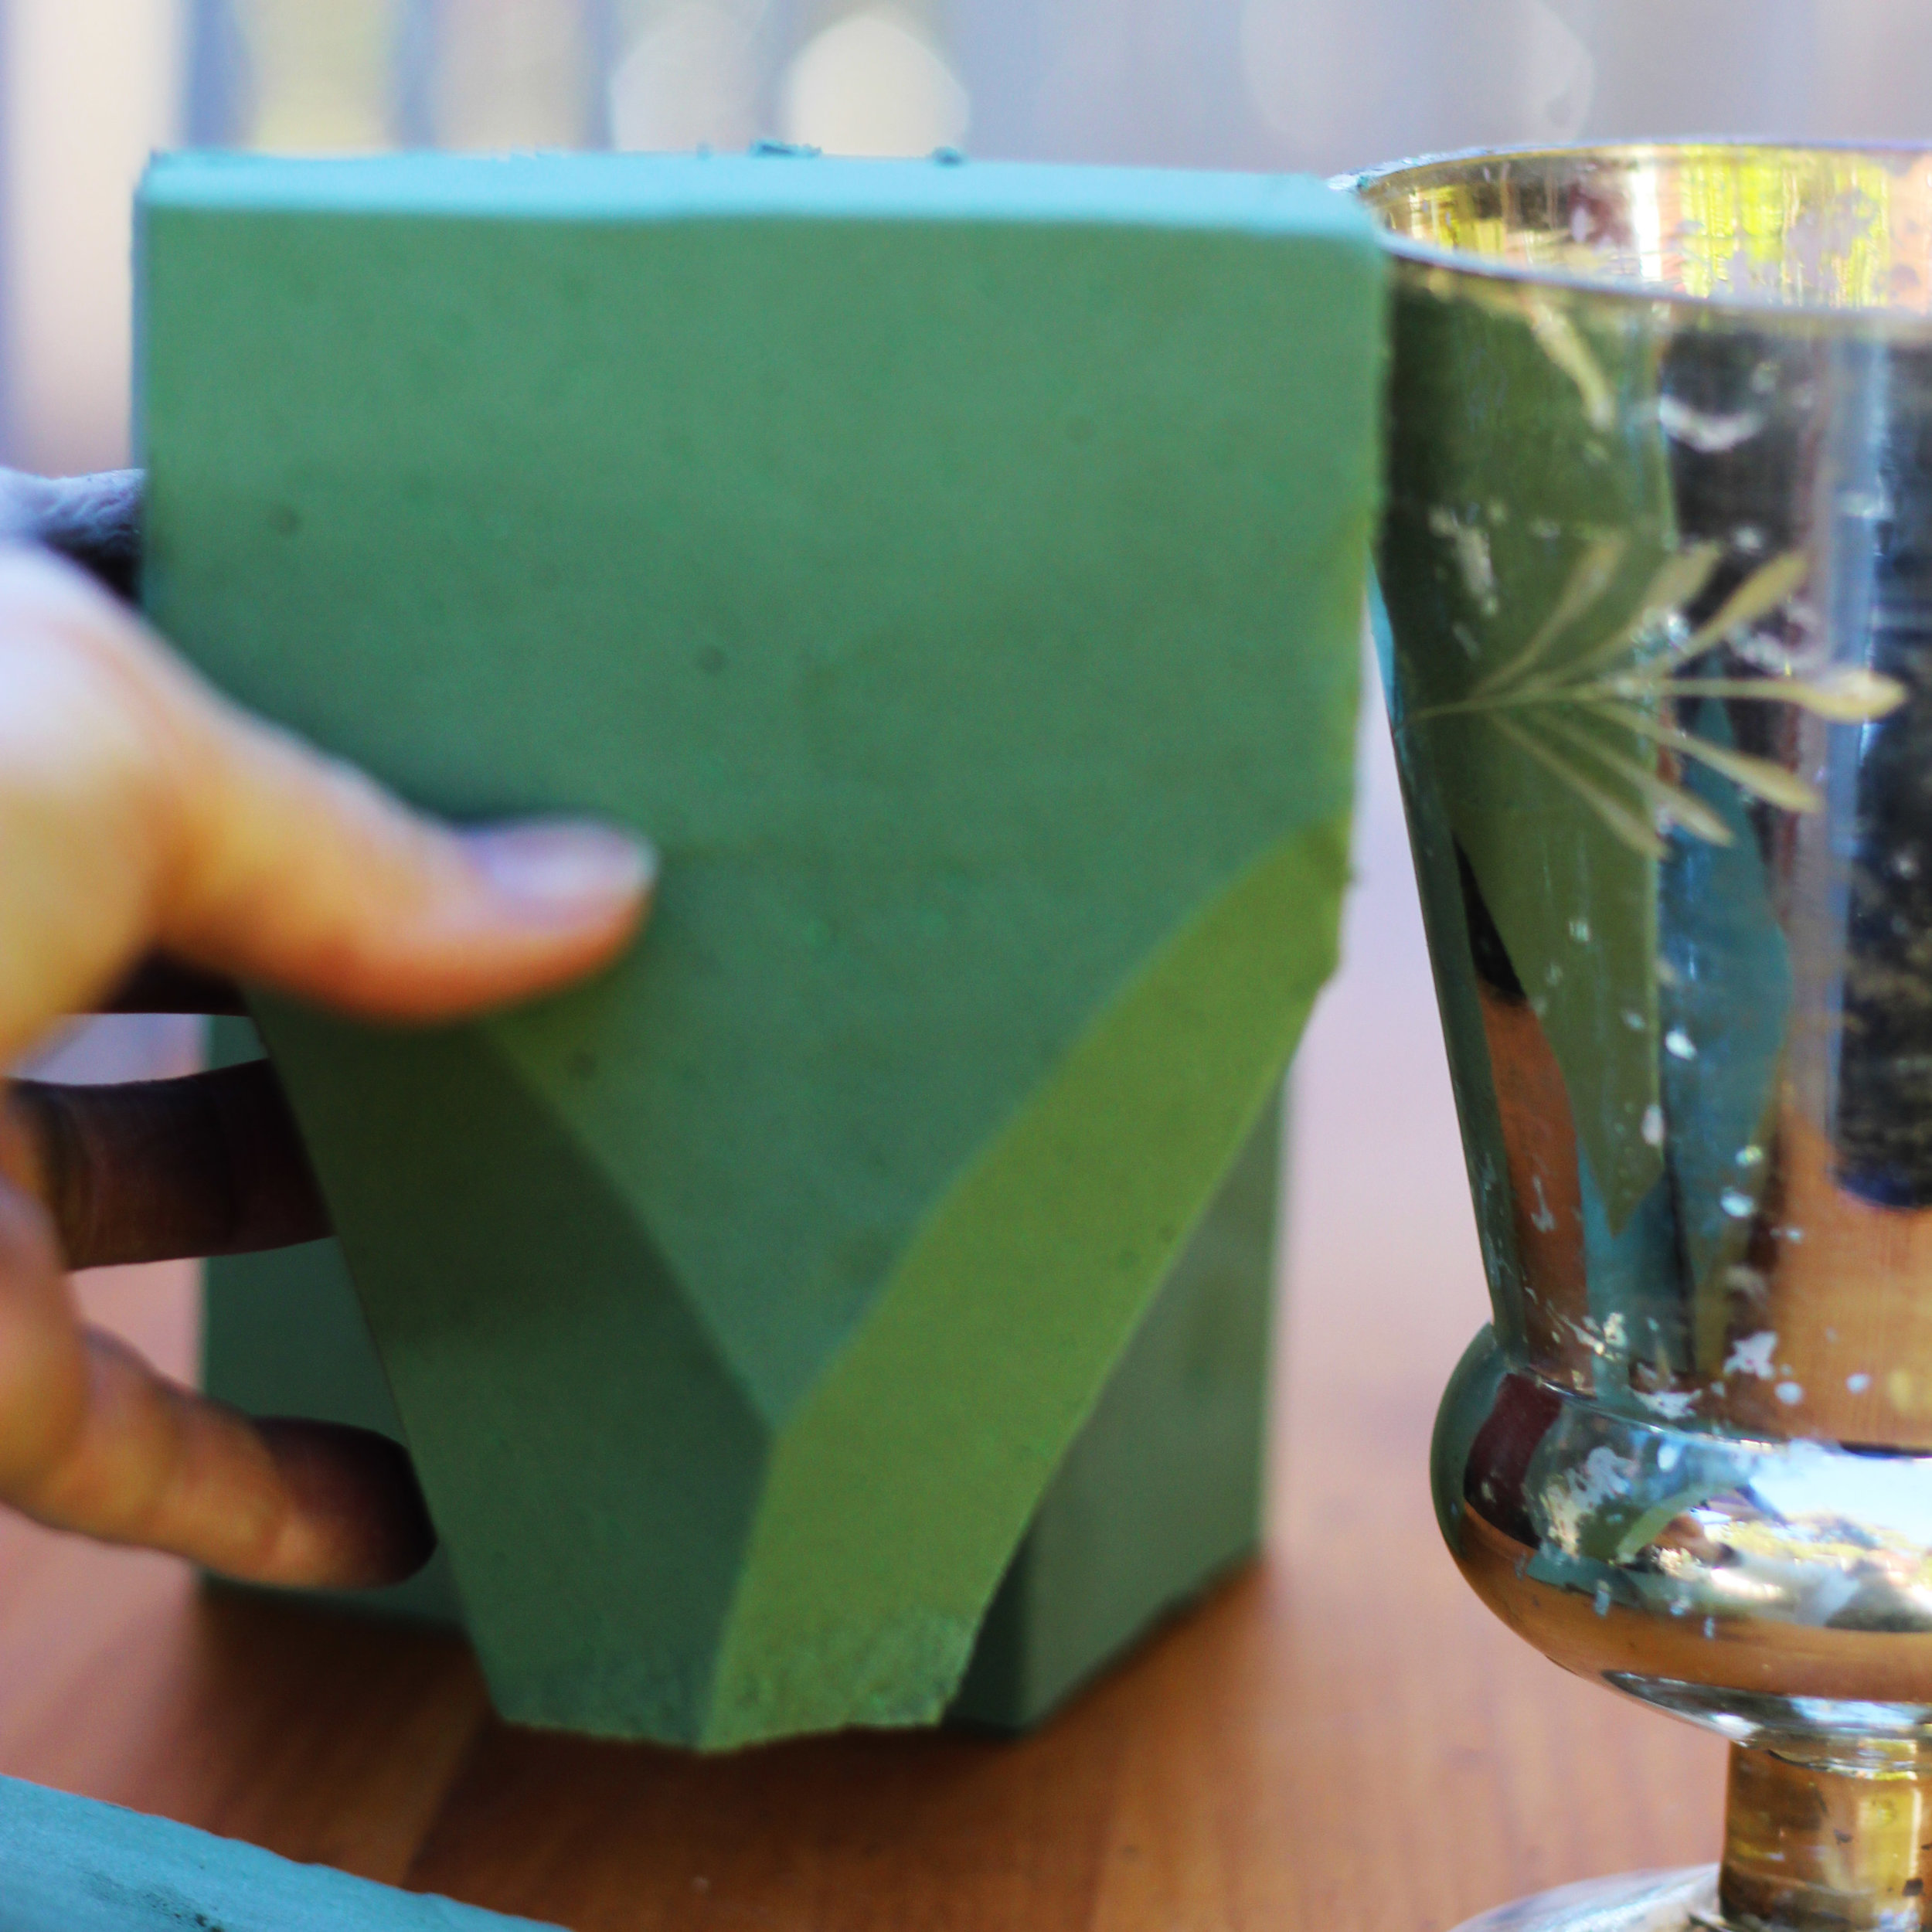 Use a produce knife cut the floral foam to fit the shape of the chalice.